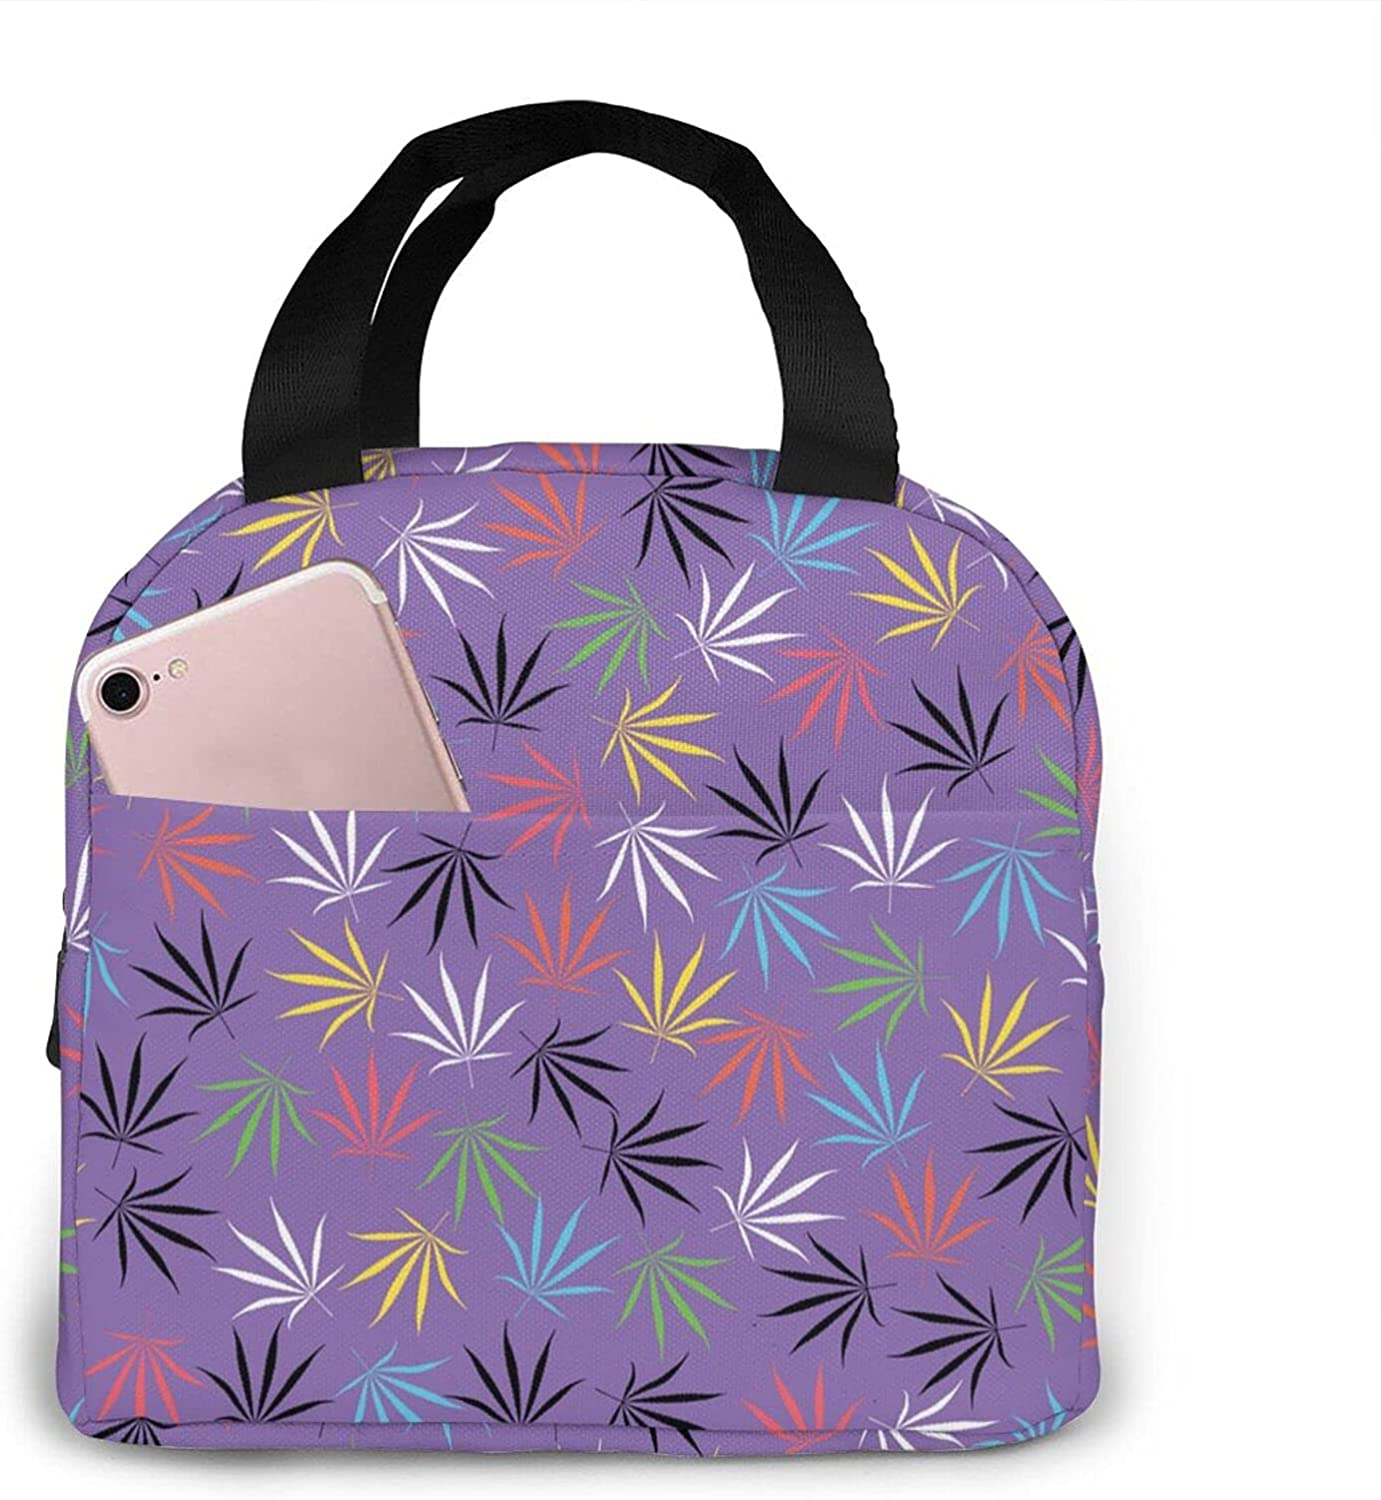 Insulated Neoprene Lunch Bag for color San Jose Mall marijuana leaves Cash special price Women Re